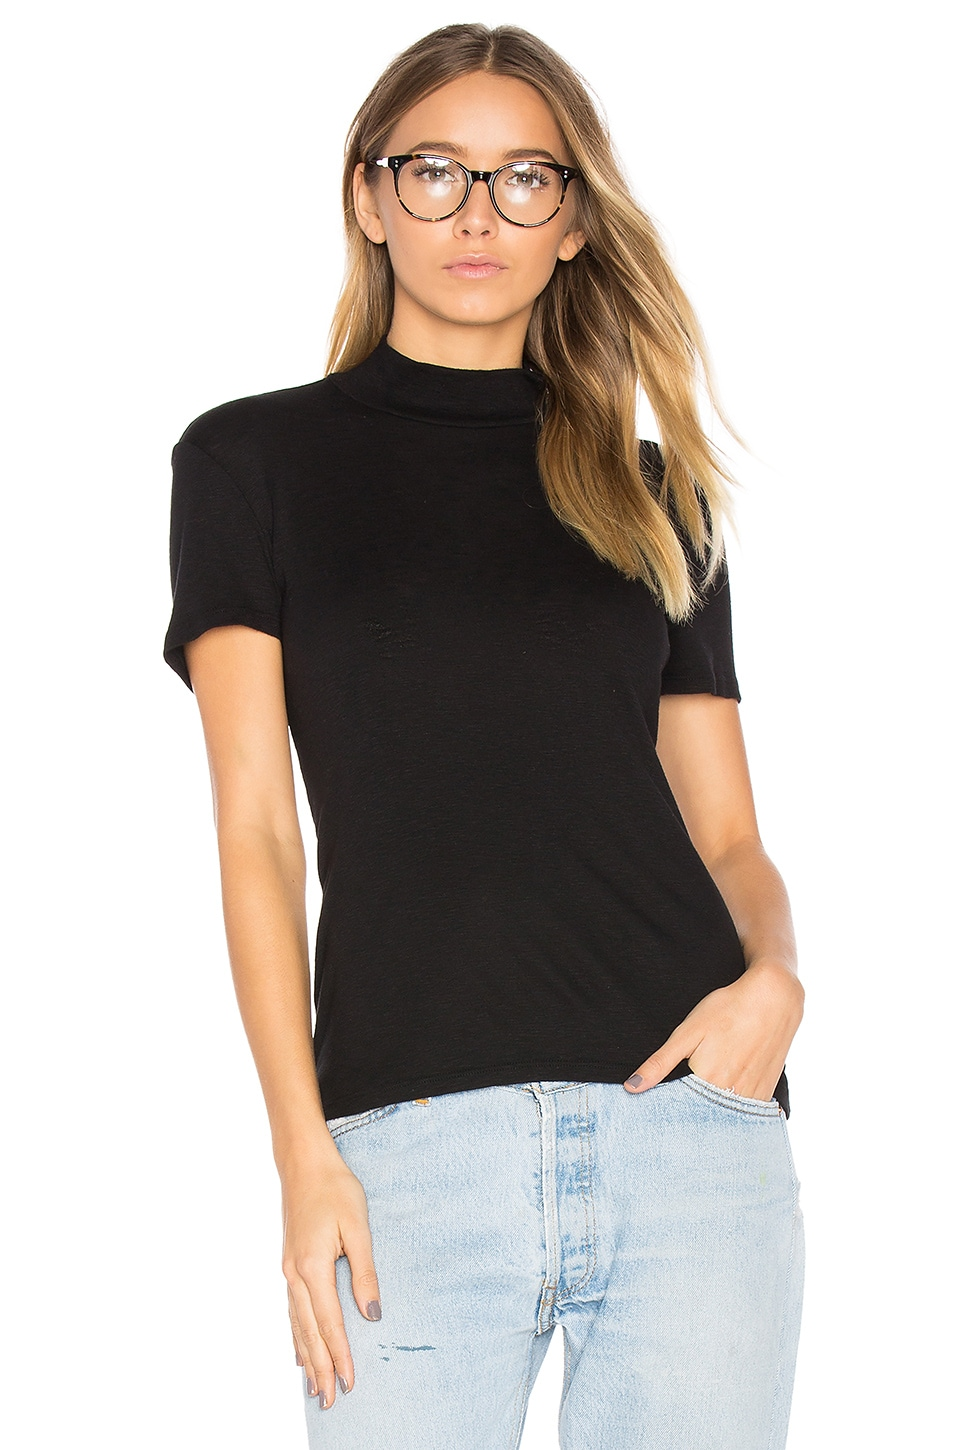 1 X 1 Mock Neck Top by Splendid